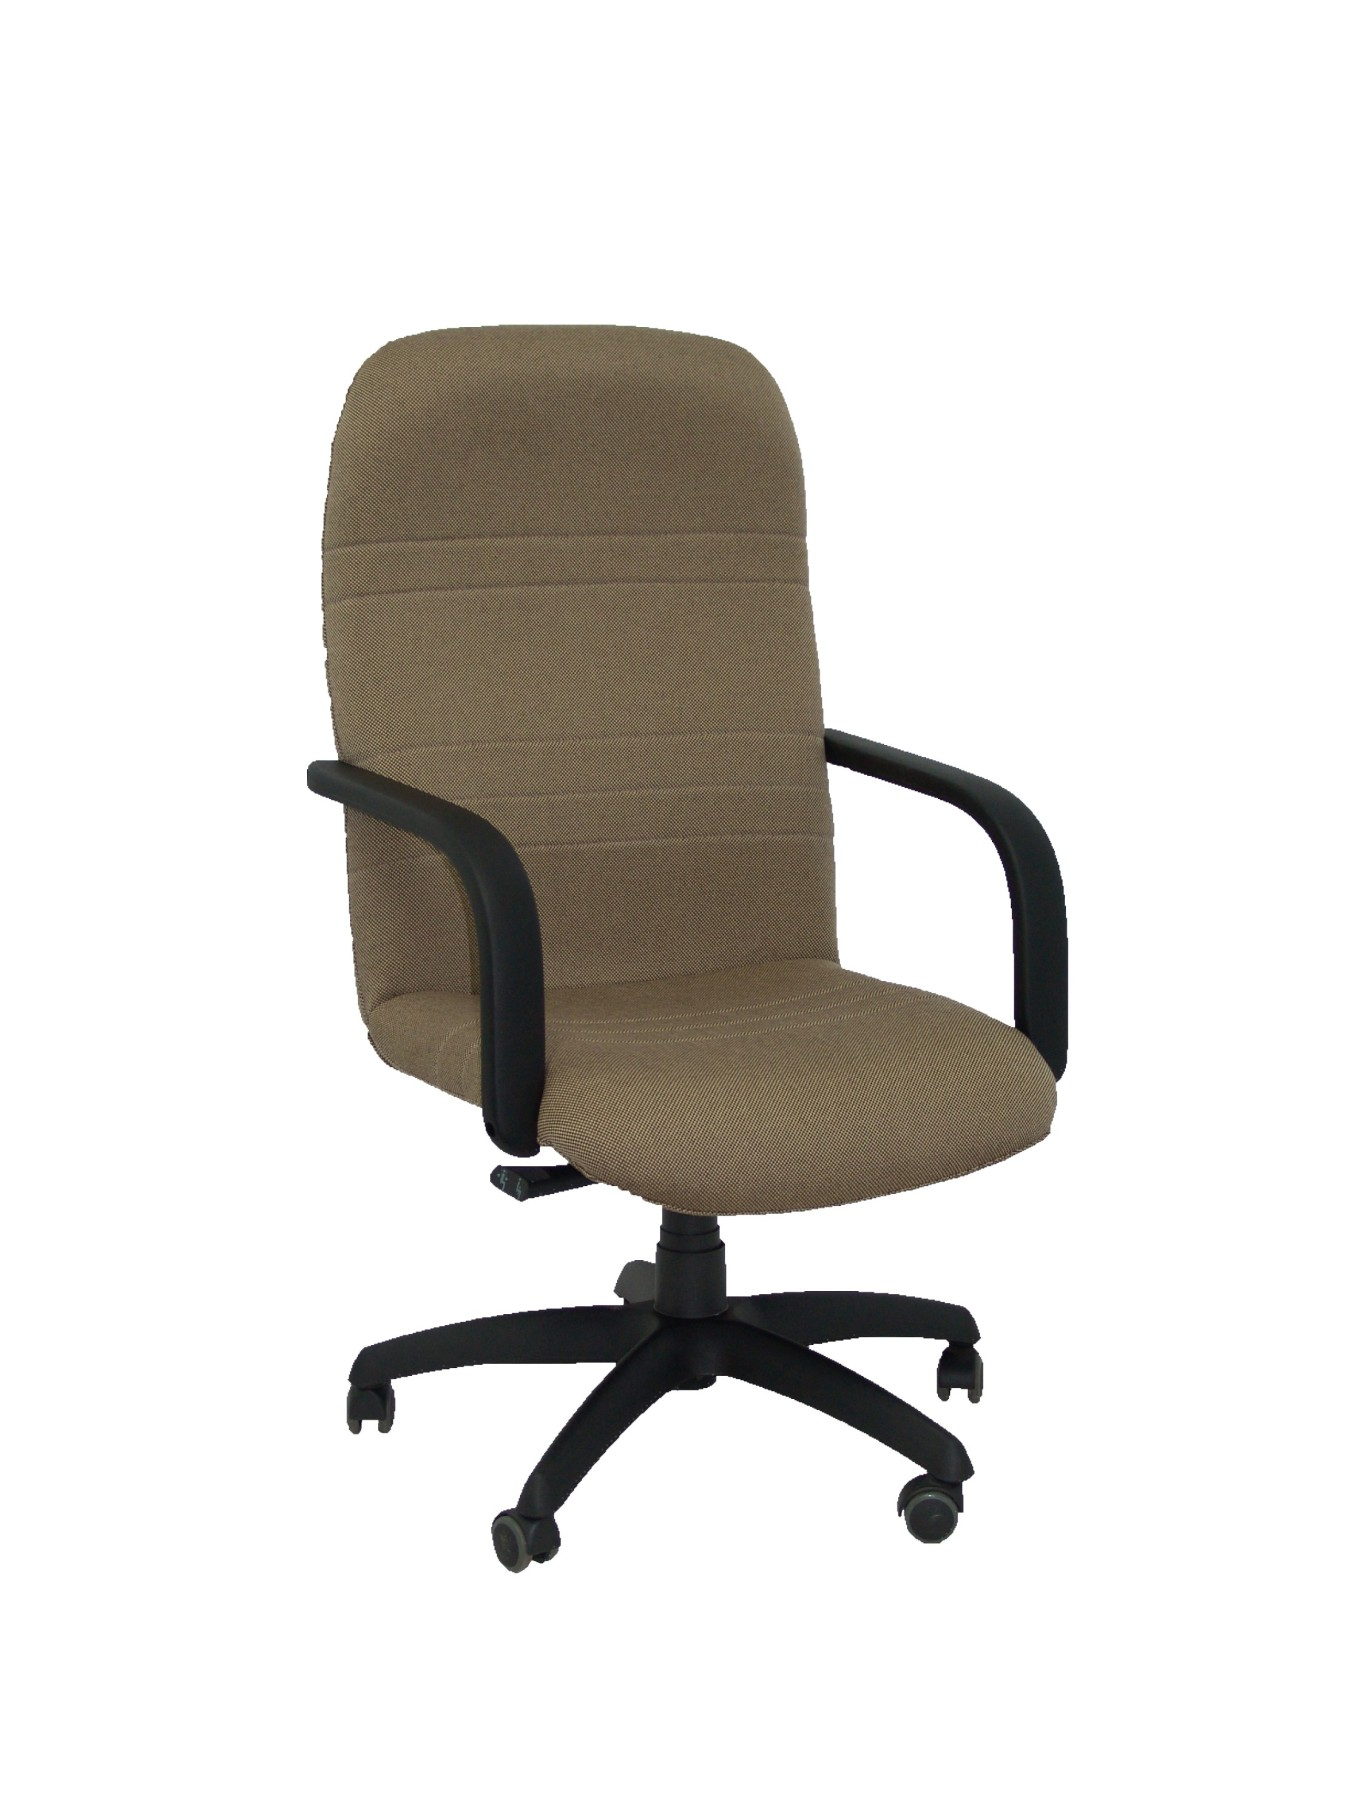 Armchair Ergonomic Steering With Tilting House Mechanism And Dimmable In High Altitude-up Seat And Backstop Upholstered In Tejid